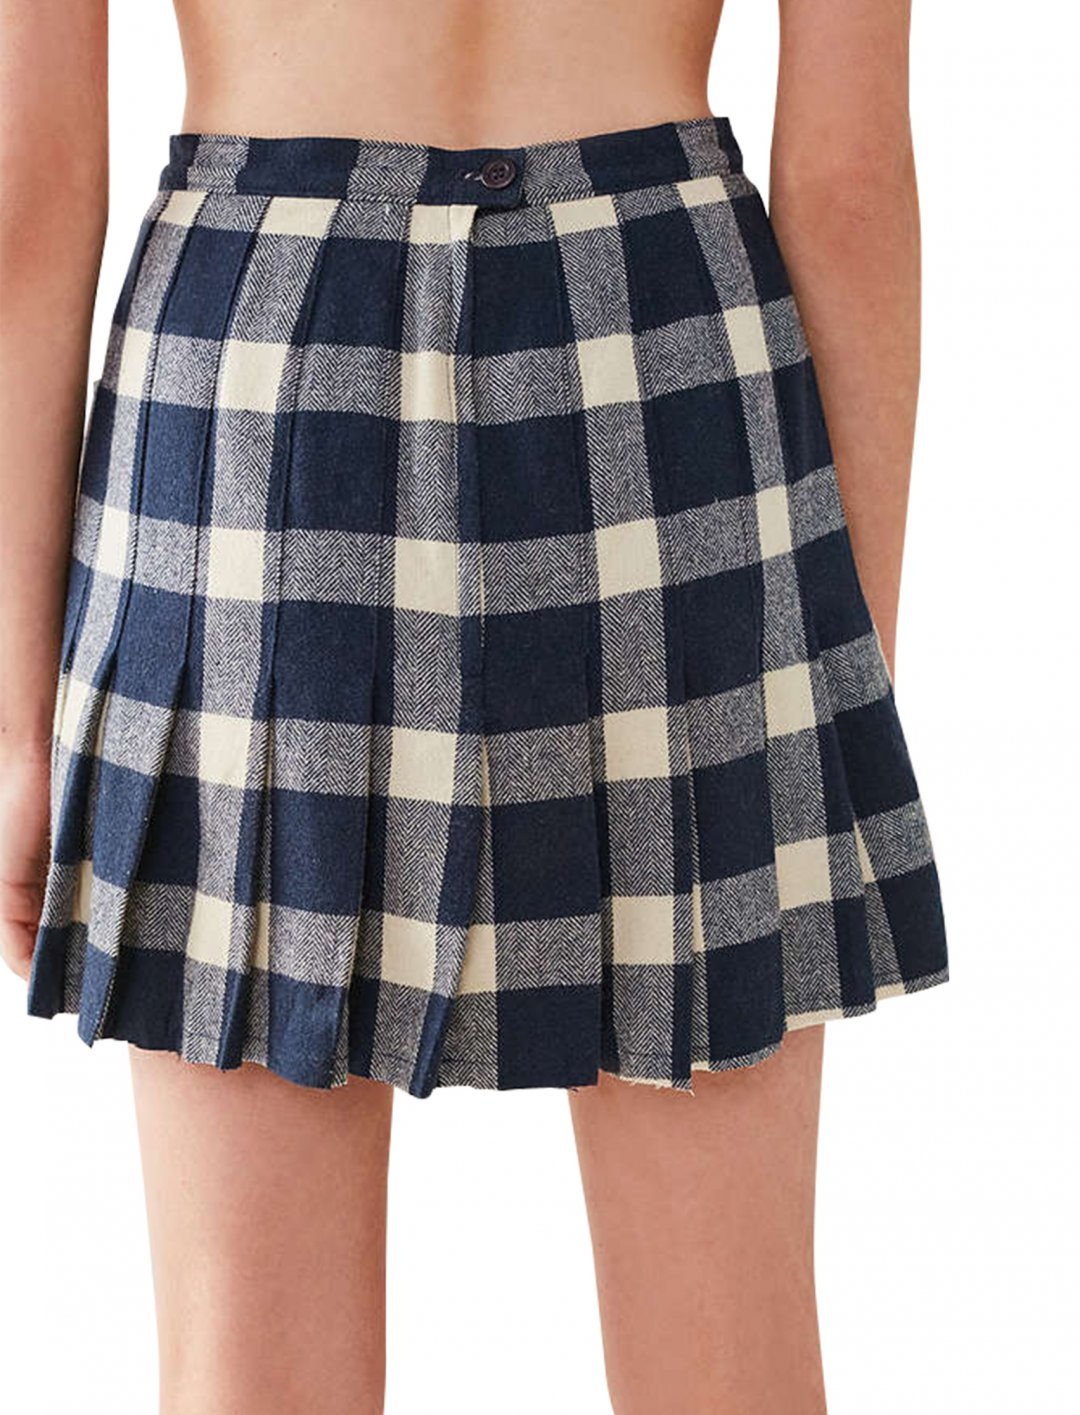 """Vintage Pleated Plaid Skirt {""""id"""":5,""""product_section_id"""":1,""""name"""":""""Clothing"""",""""order"""":5} Urban Outfitters"""